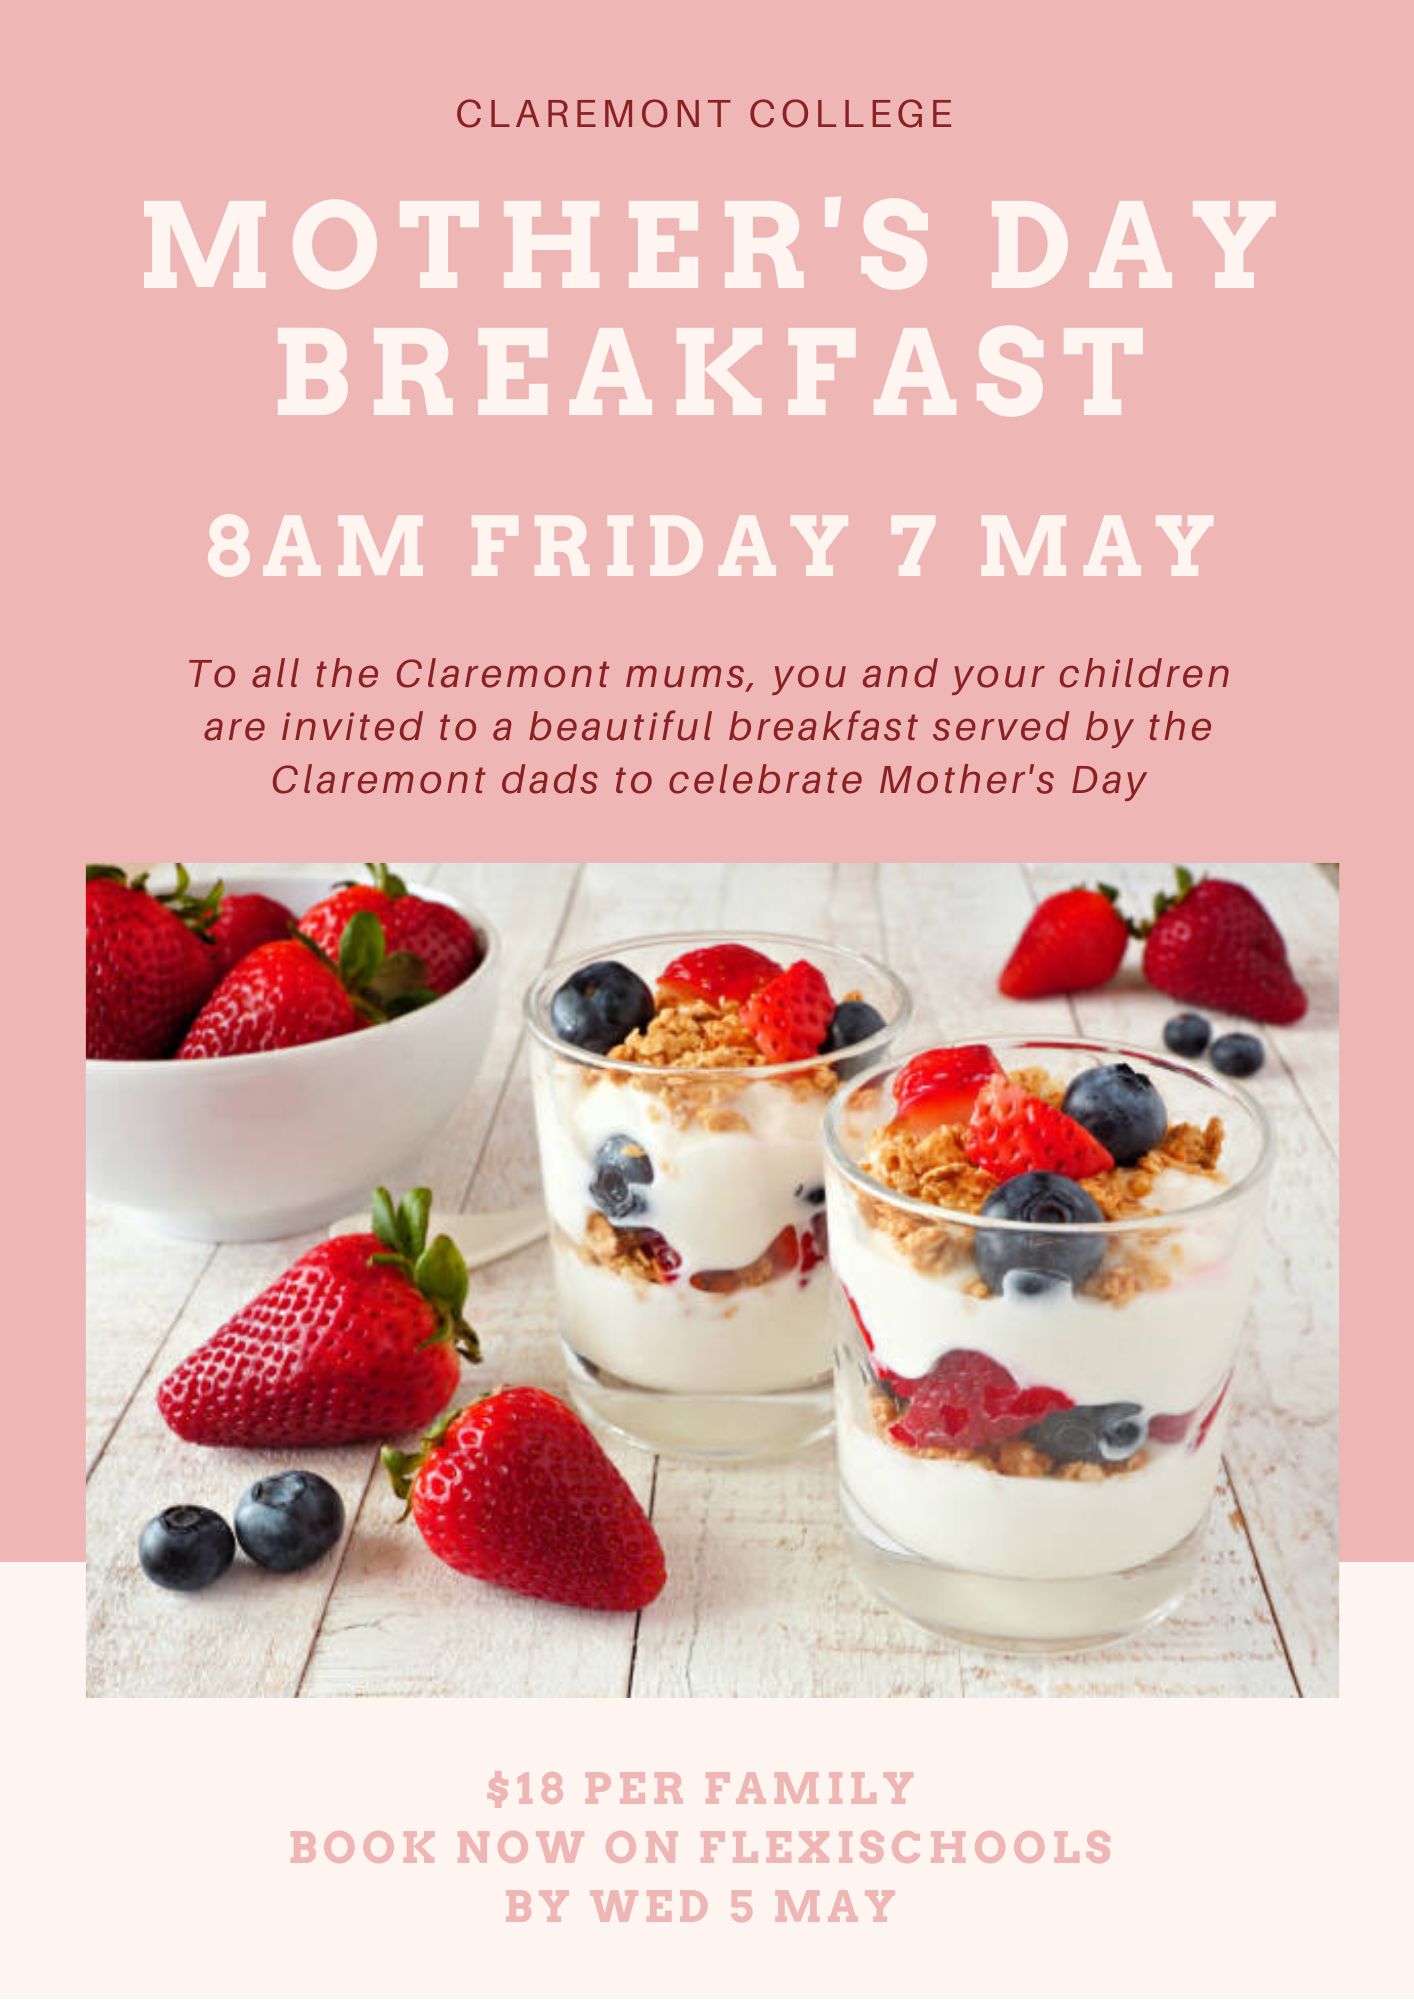 Mothers-Day-Breakfast-Flyer.png?mtime=20210423142329#asset:24072